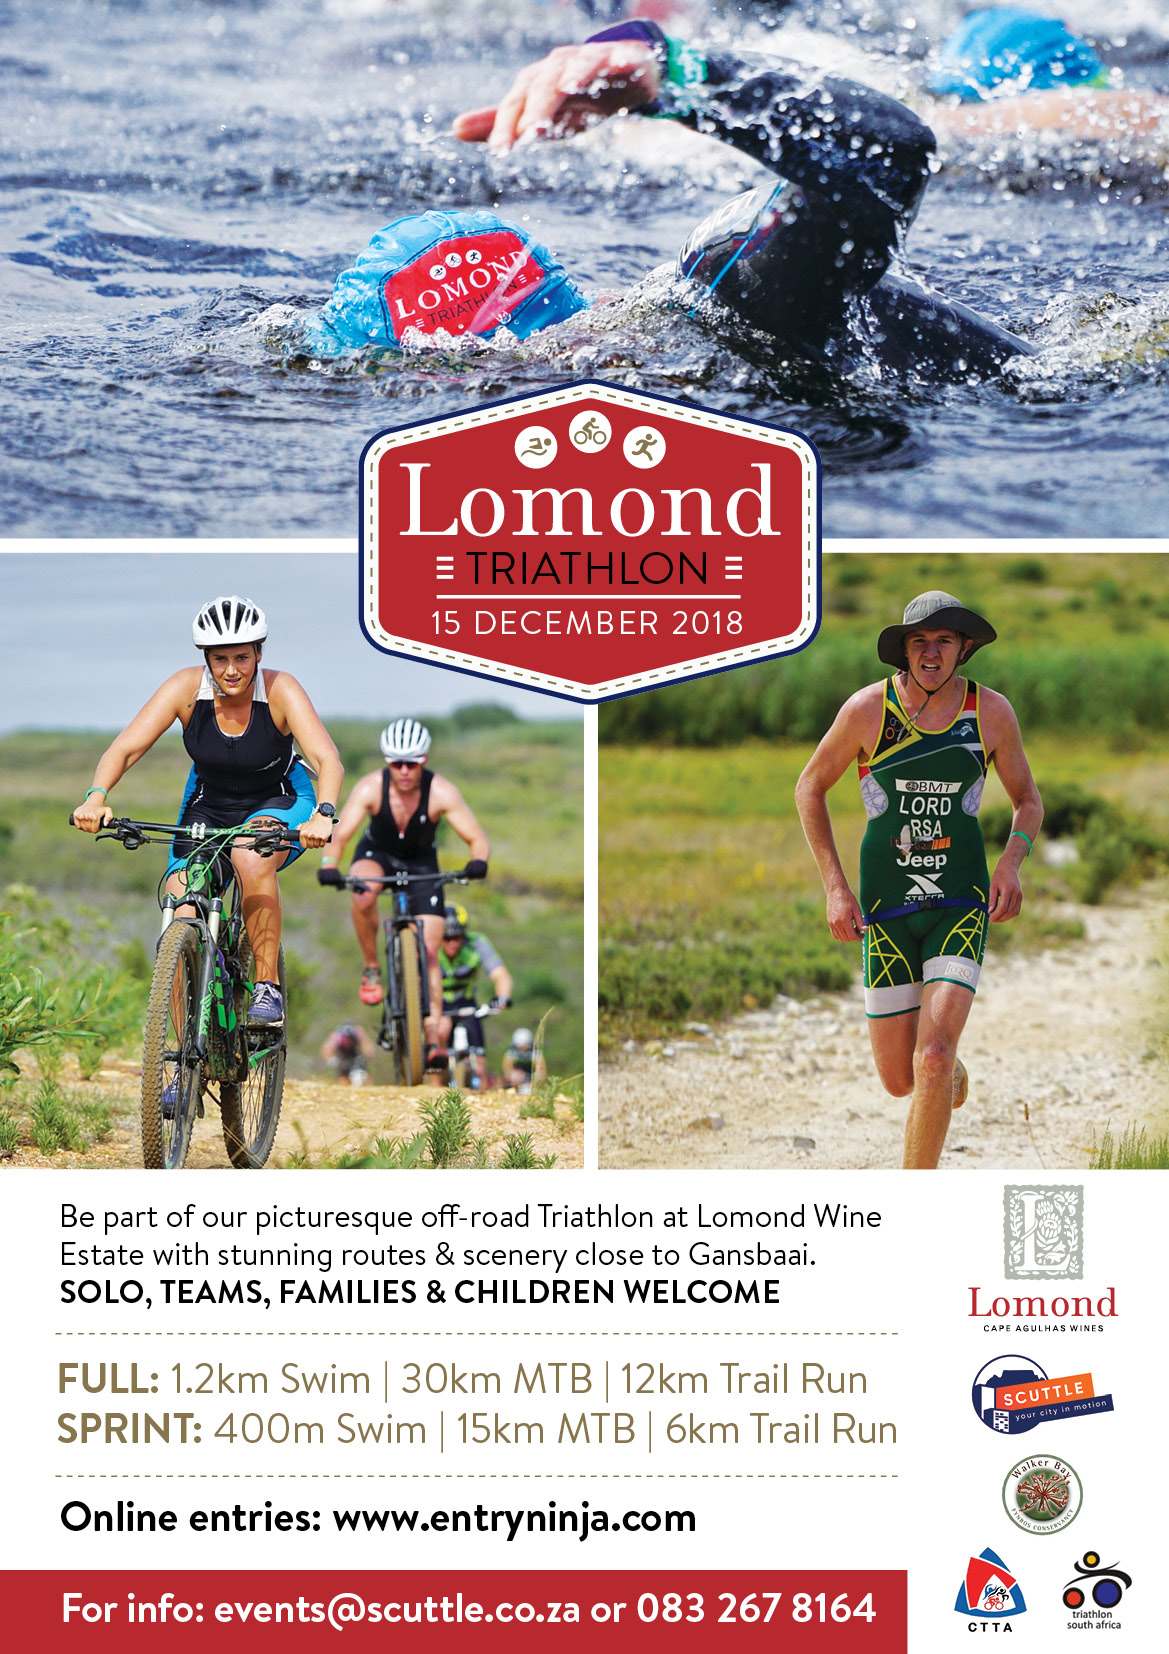 Lomond triathlon